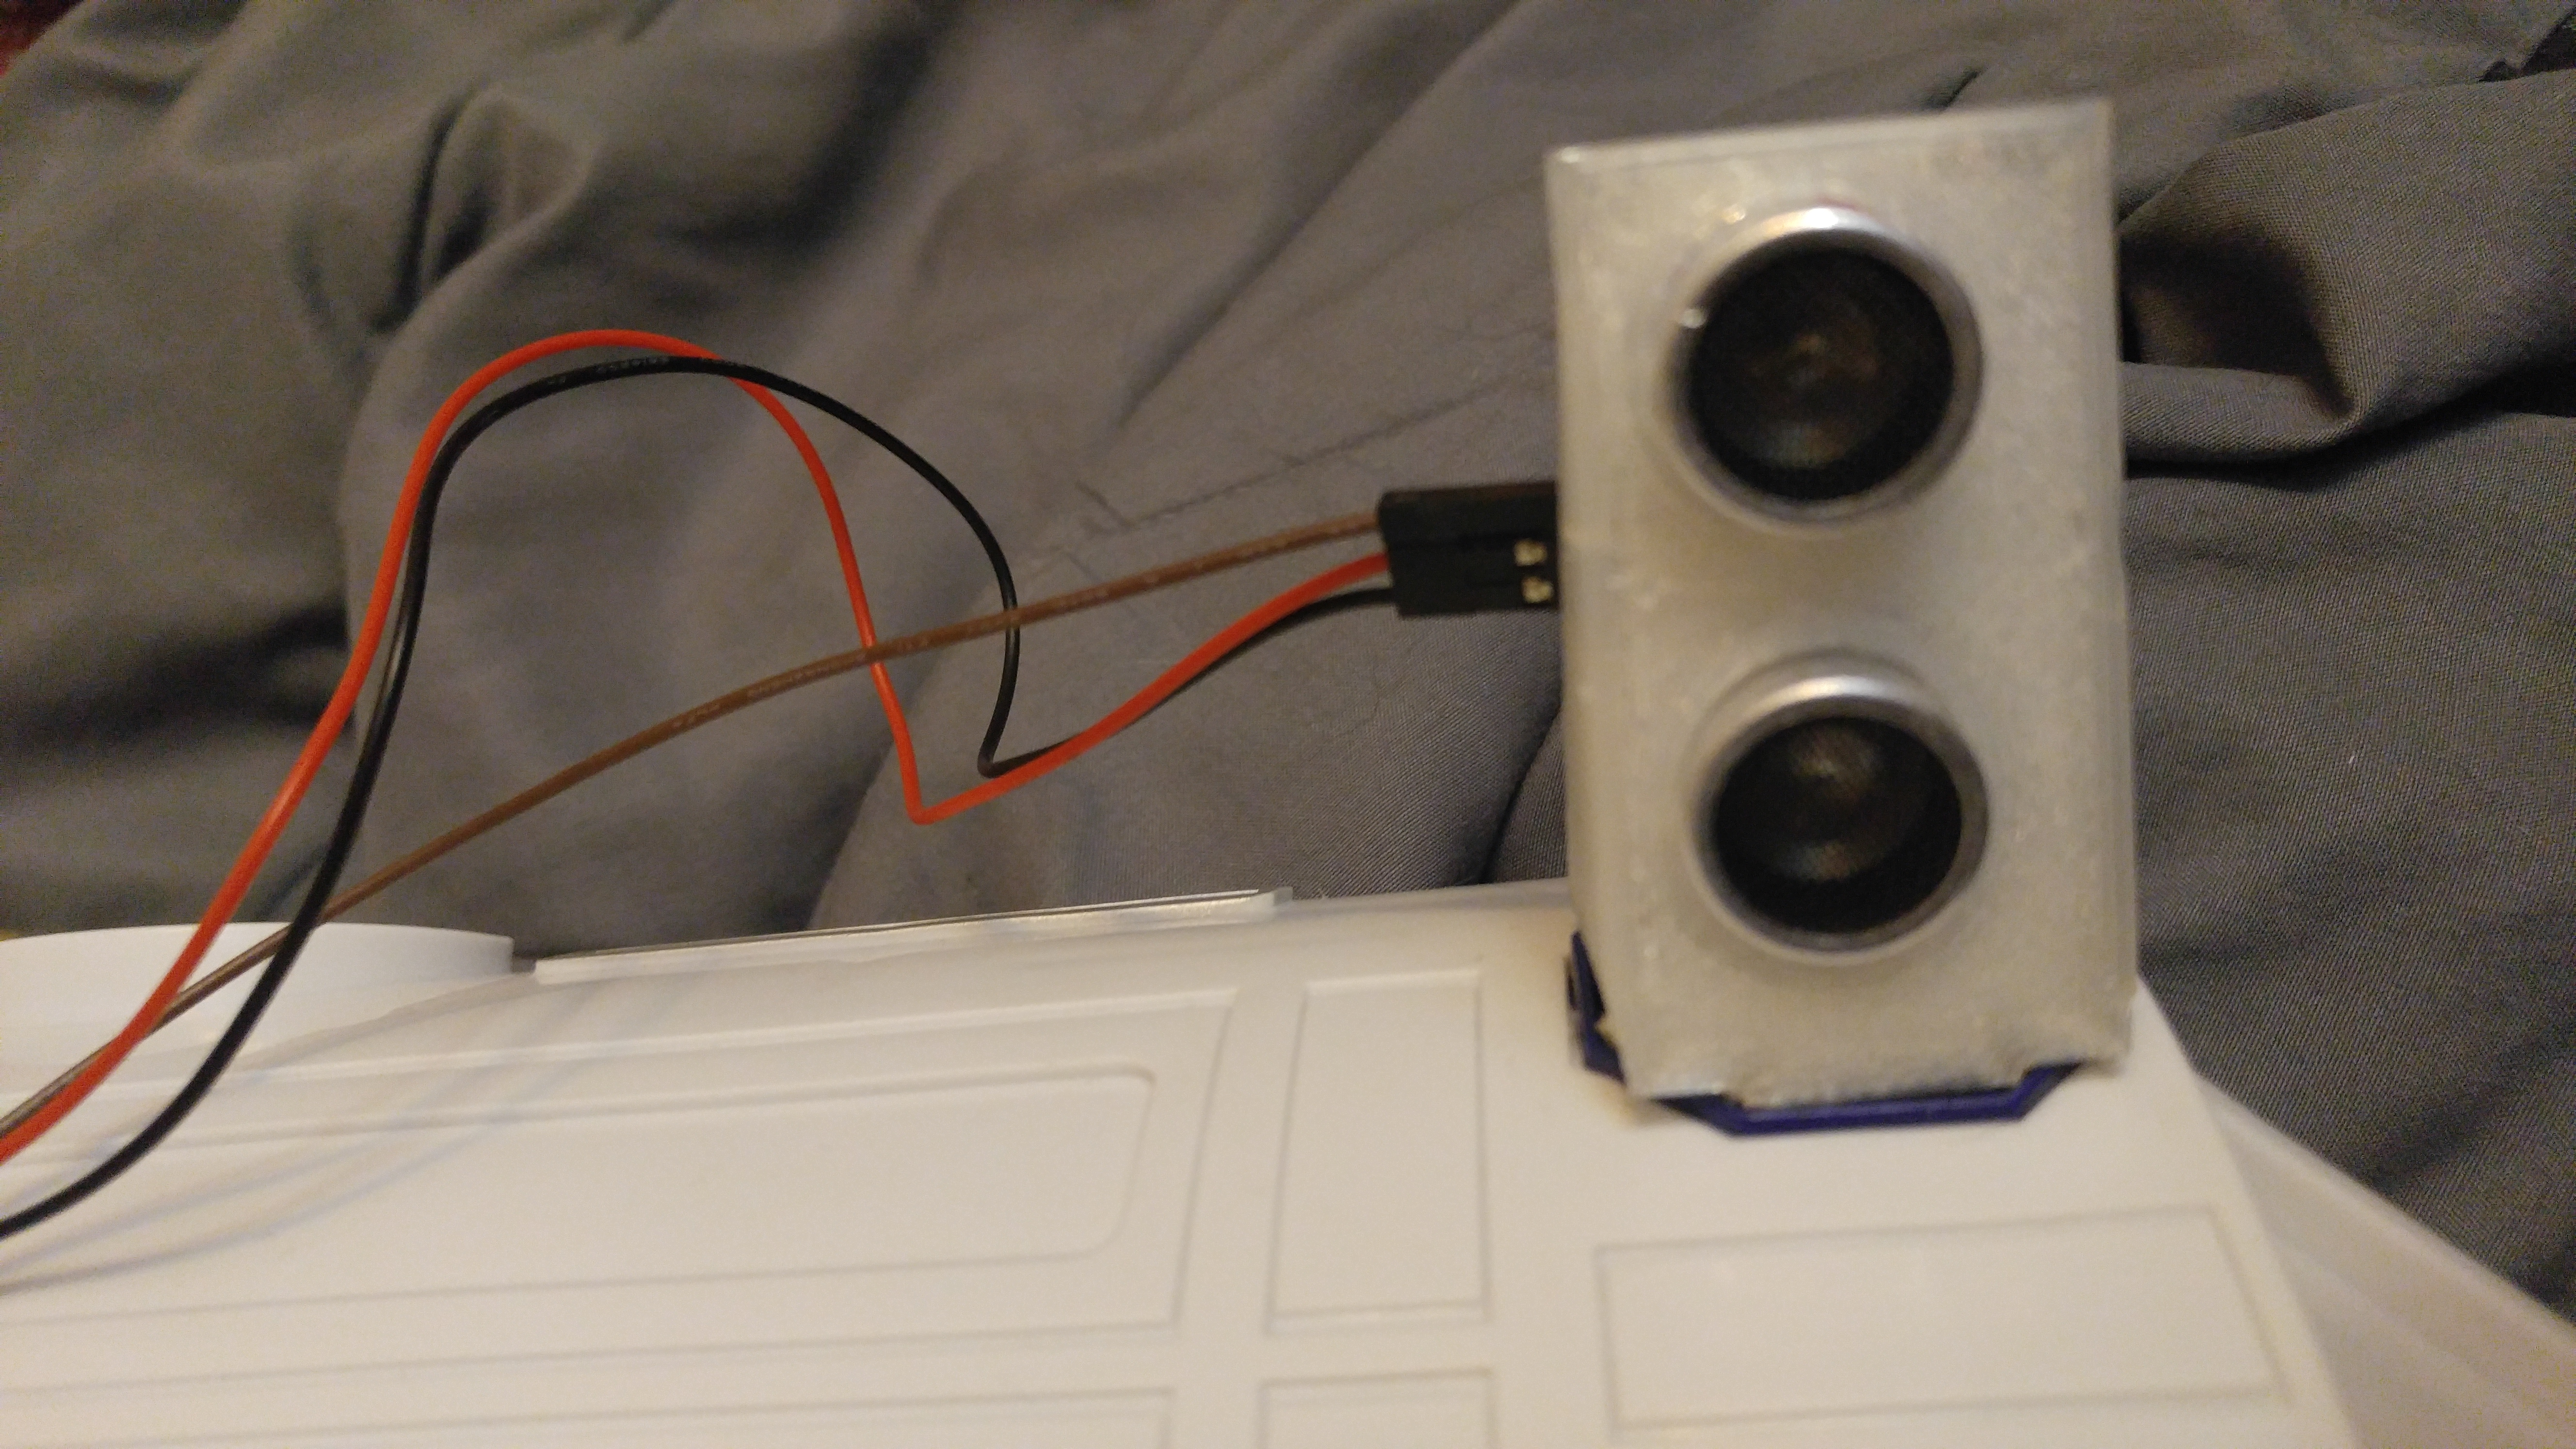 Picture of Ultrasonic Sensor(Optional, But Recommended)